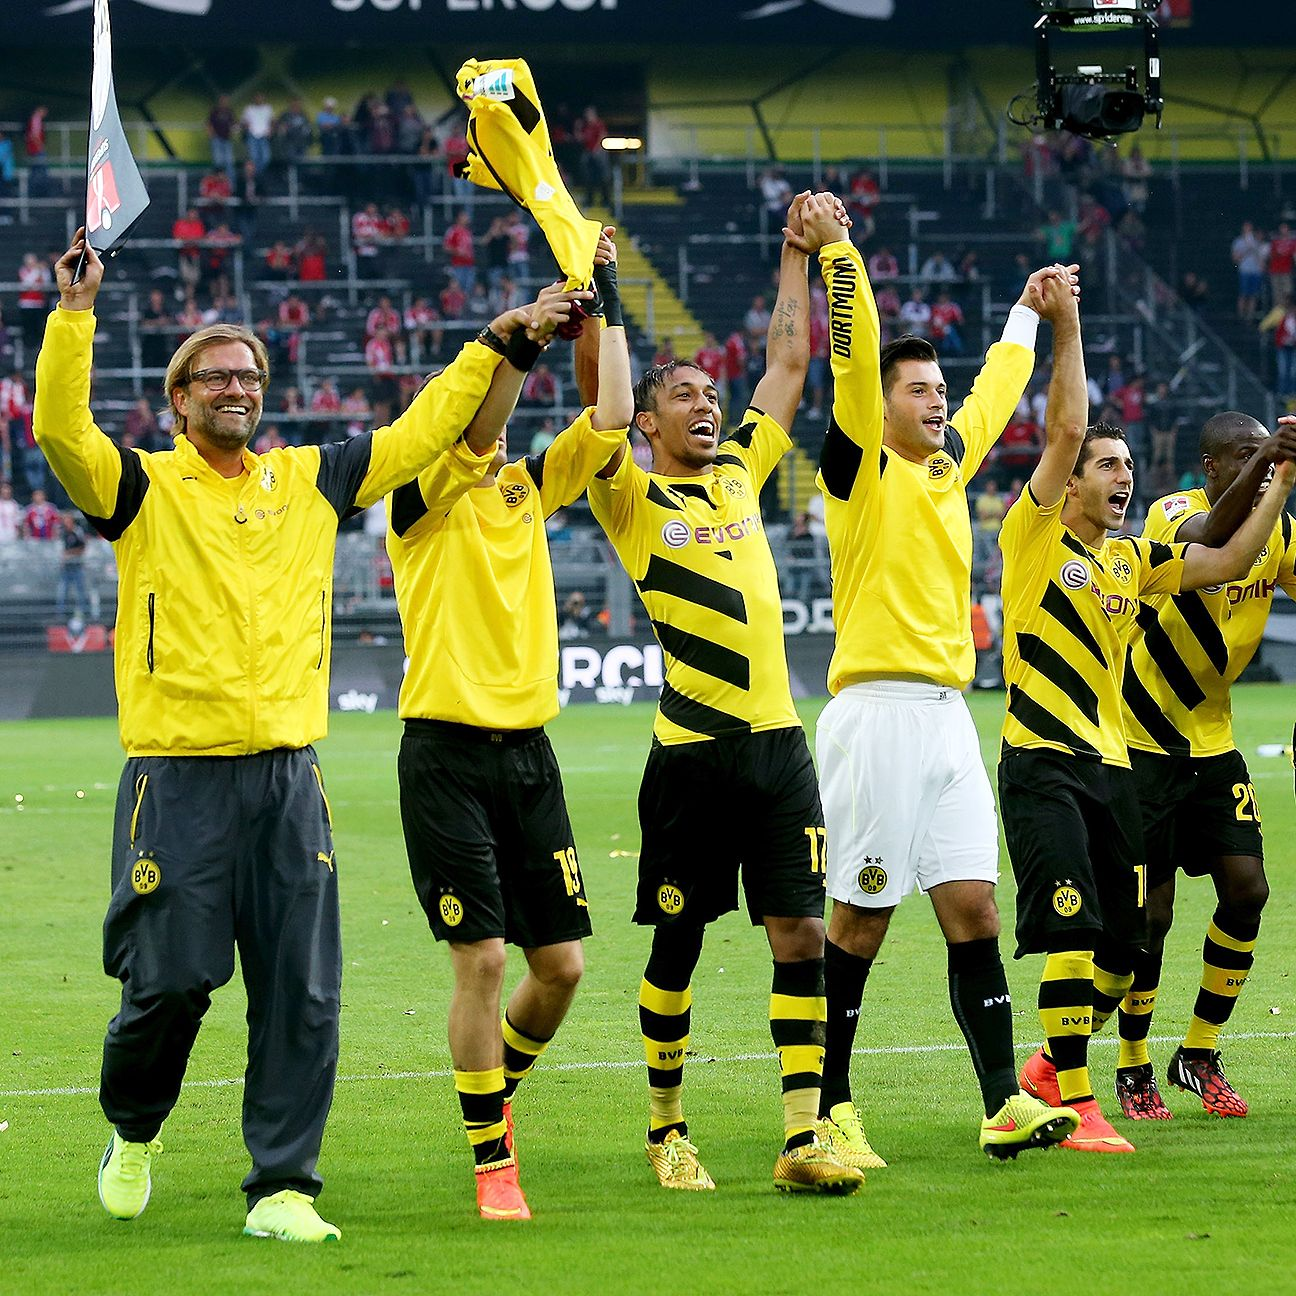 Borussia Dortmund are hoping to give manager Jurgen Klopp a celebratory send-off.